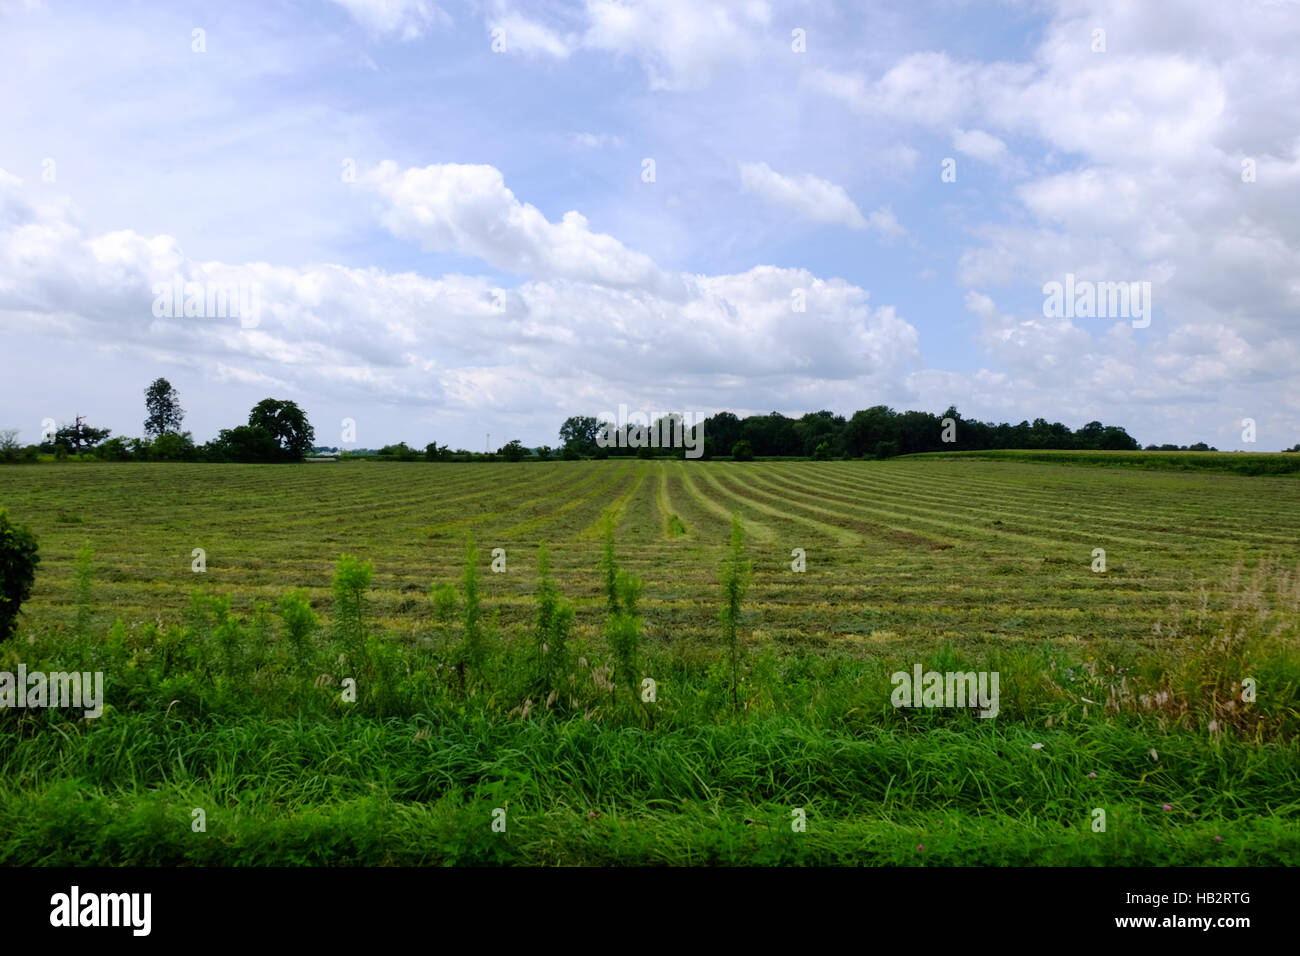 Hayfield in the summer. - Stock Image